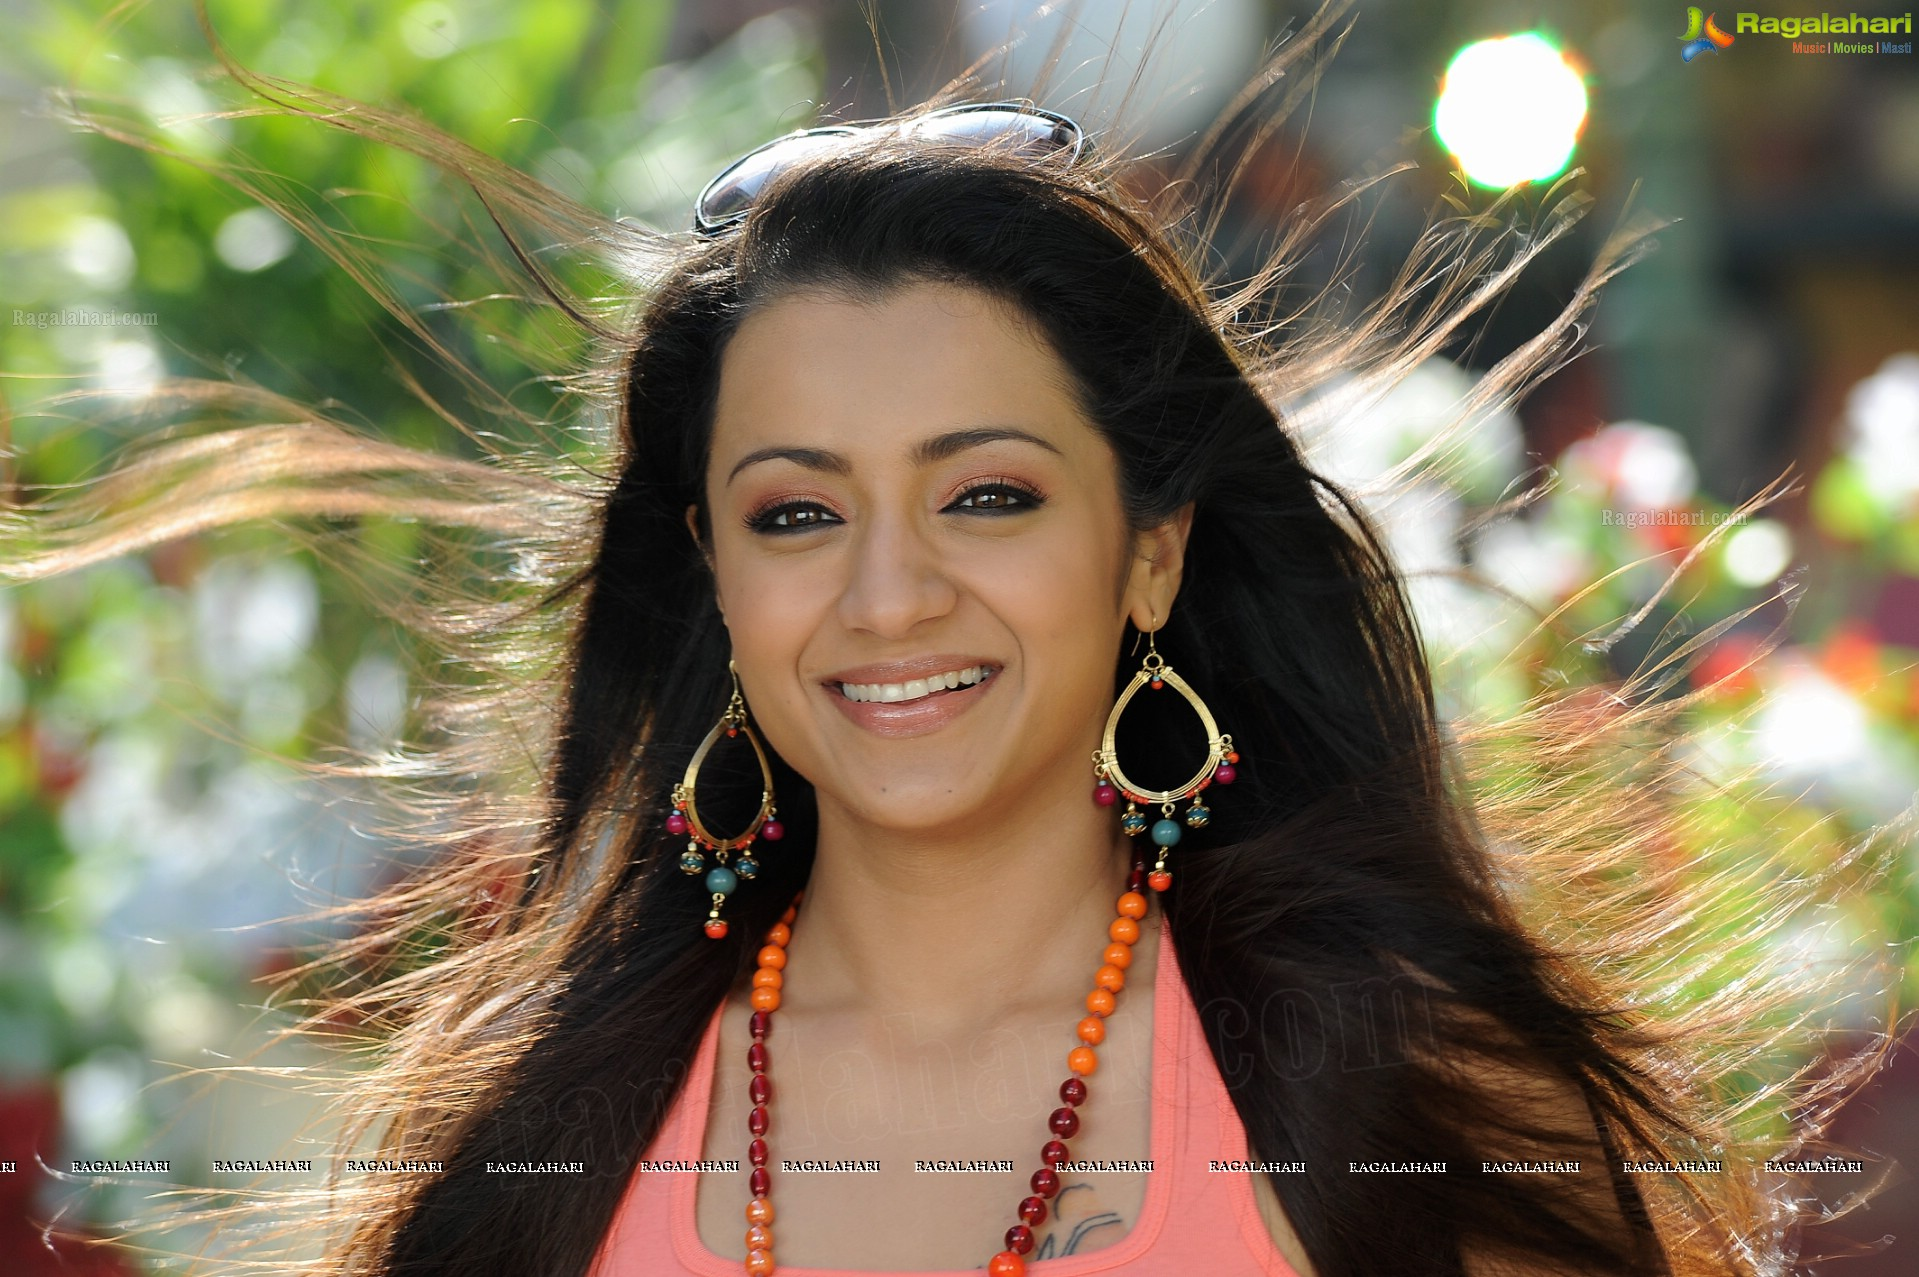 Divani Mai Diwani Movie Trisha Krishnan Degraded From A High Class Modern Girl To